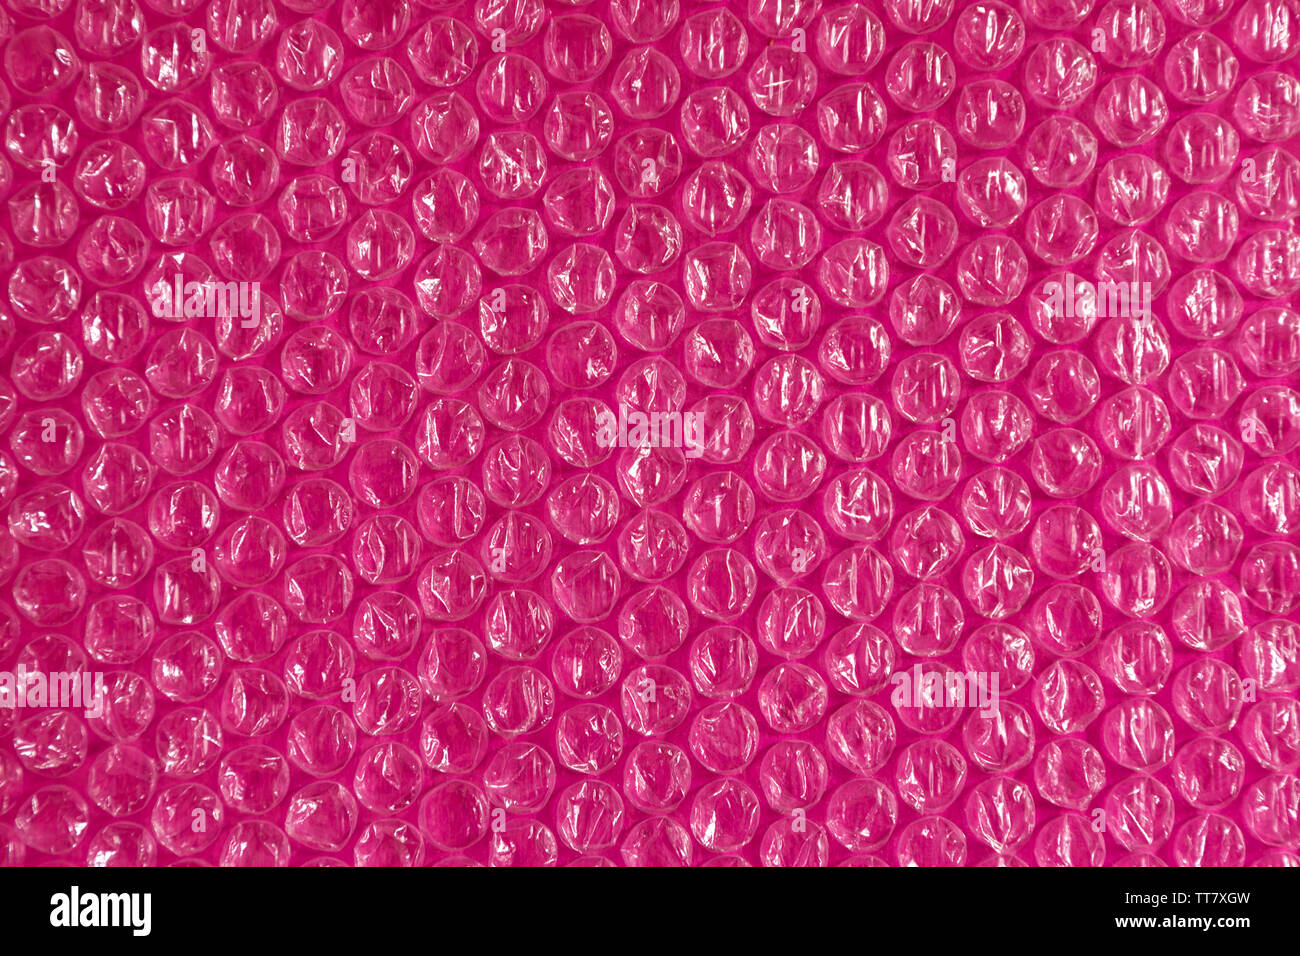 Cellophane and plastic pink background. The texture of old plastic's purple packing with balls. Image lilac and white tones. - Stock Image